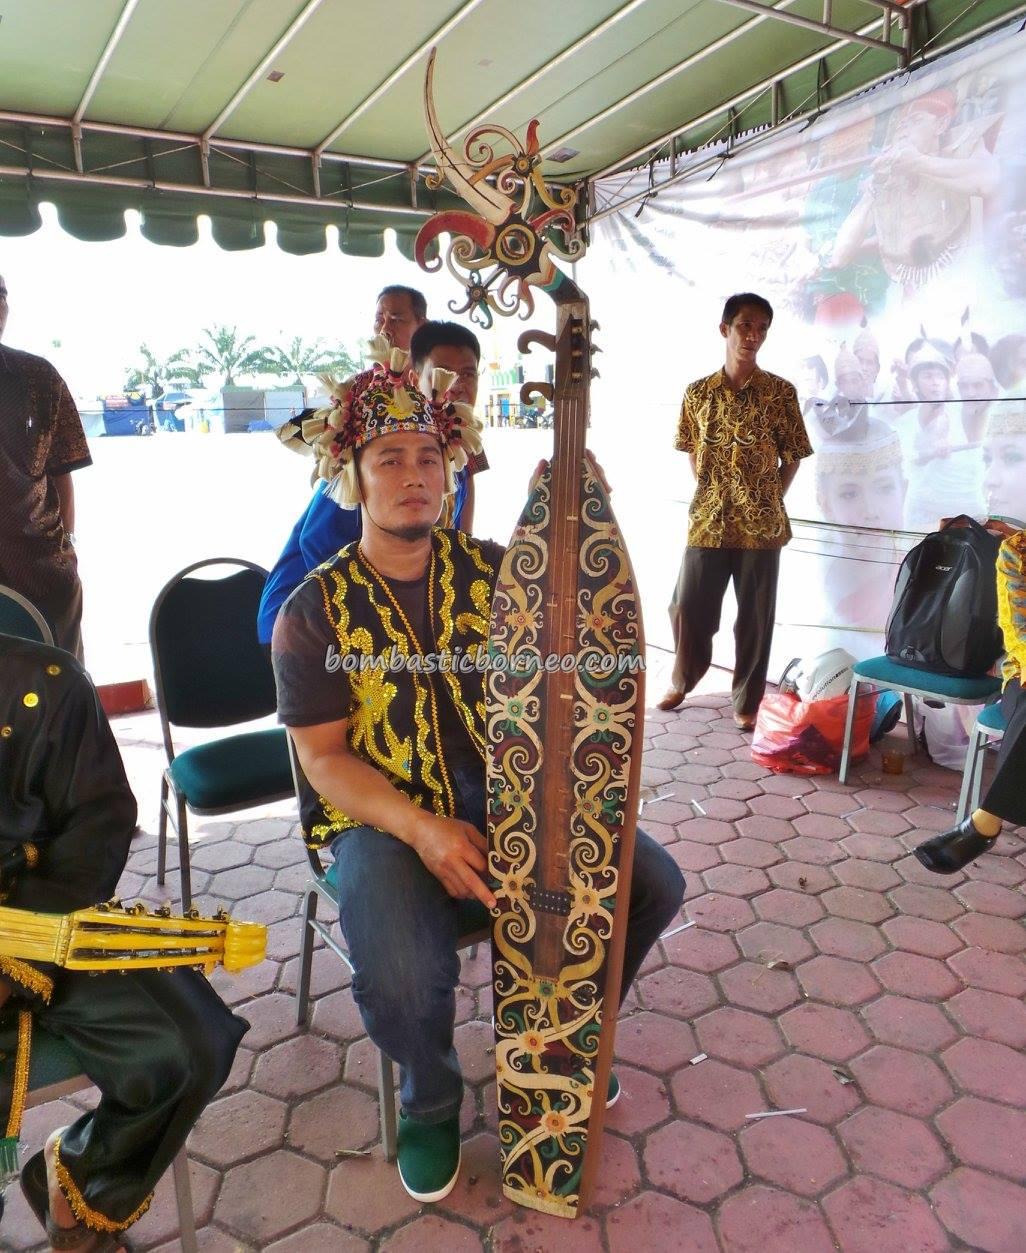 Tanjung Selor Indonesia  City new picture : ... Festival, Pekan Budaya Kota Tanjung Selor Indonesia | BOMBASTIC BORNEO